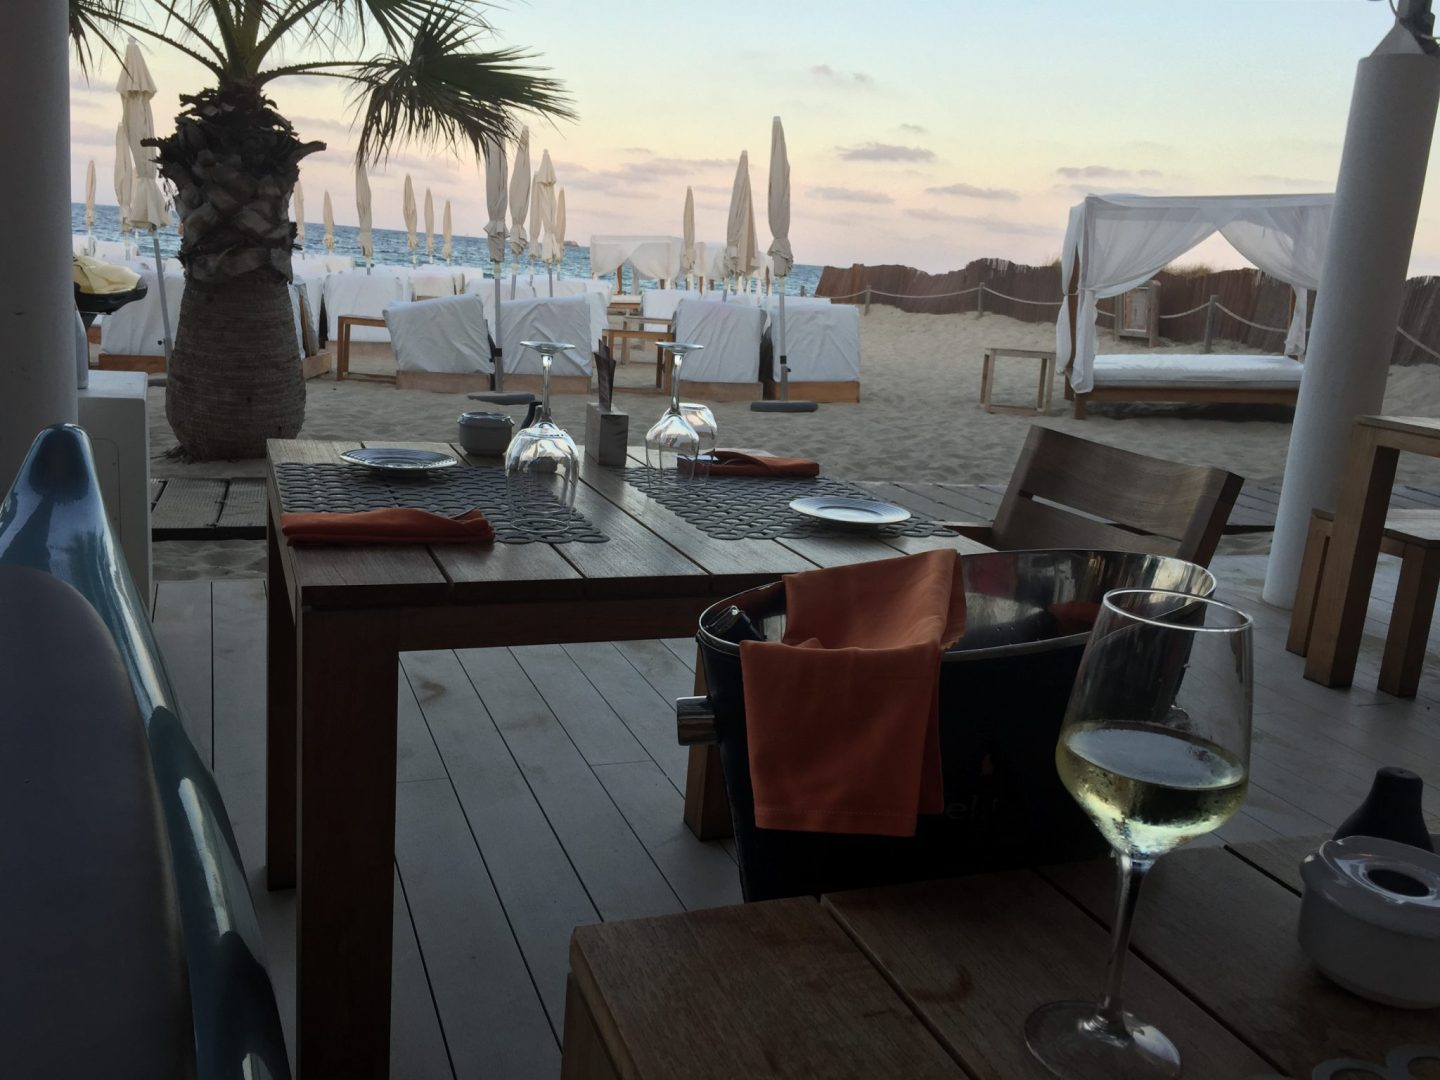 The Beach Club at the Hard Rock Hotel Ibiza